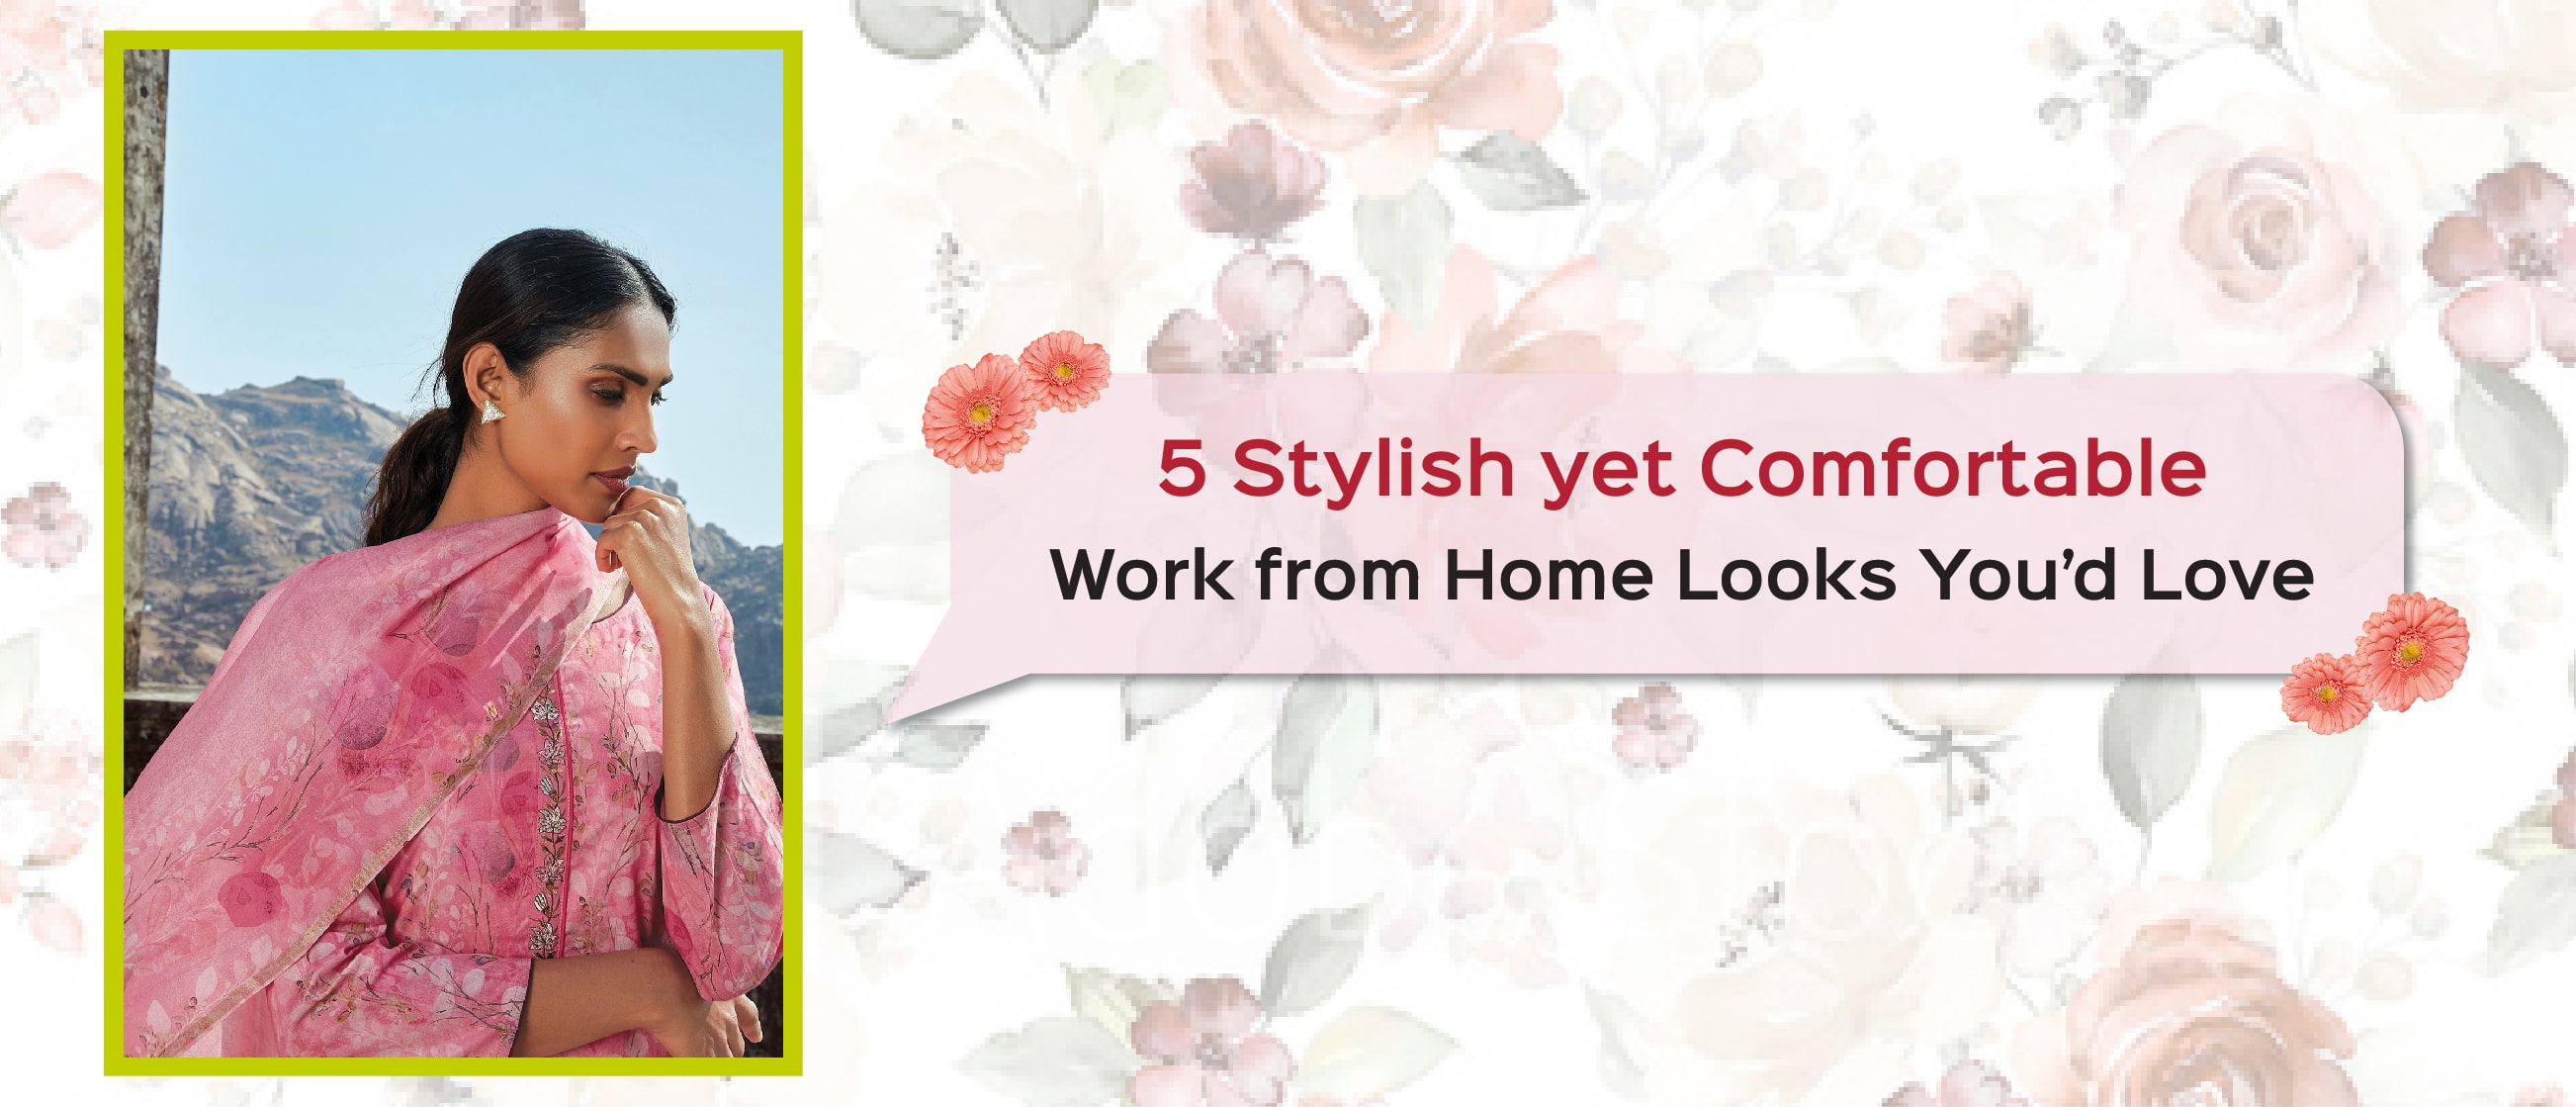 5 Stylish yet Comfortable Work from Home Looks You'd Love